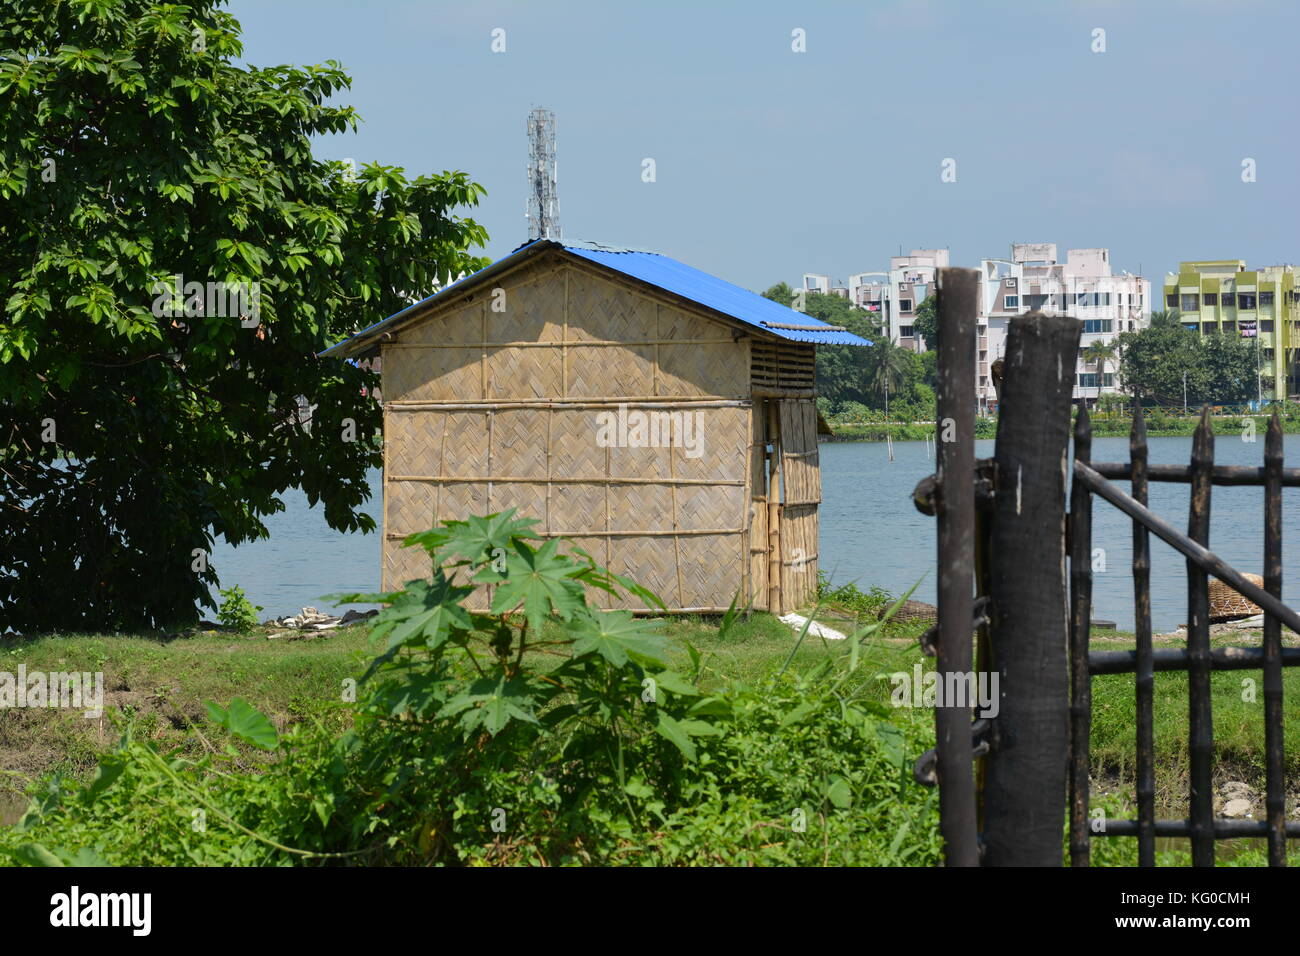 little green hut stockfotos little green hut bilder alamy. Black Bedroom Furniture Sets. Home Design Ideas